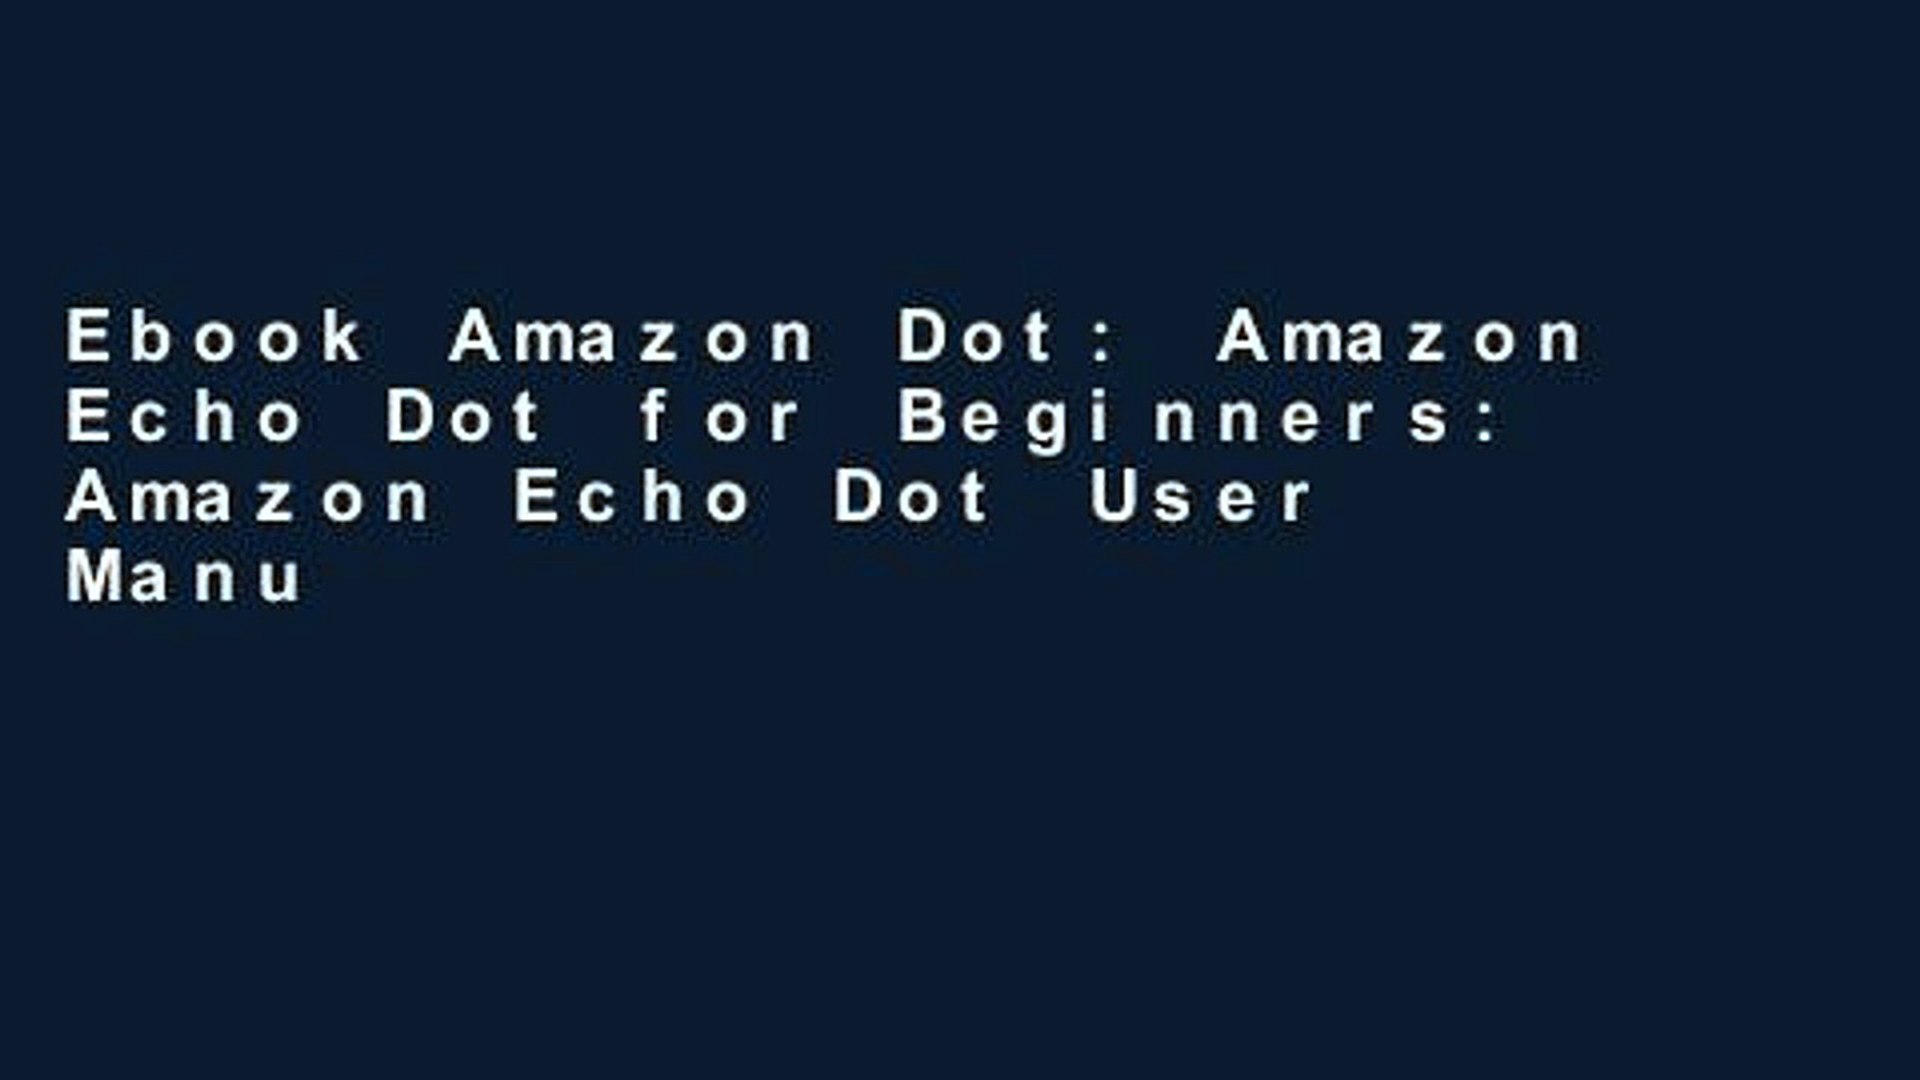 Ebook Amazon Dot: Amazon Echo Dot for Beginners: Amazon Echo Dot User Manual to enrich your Smart